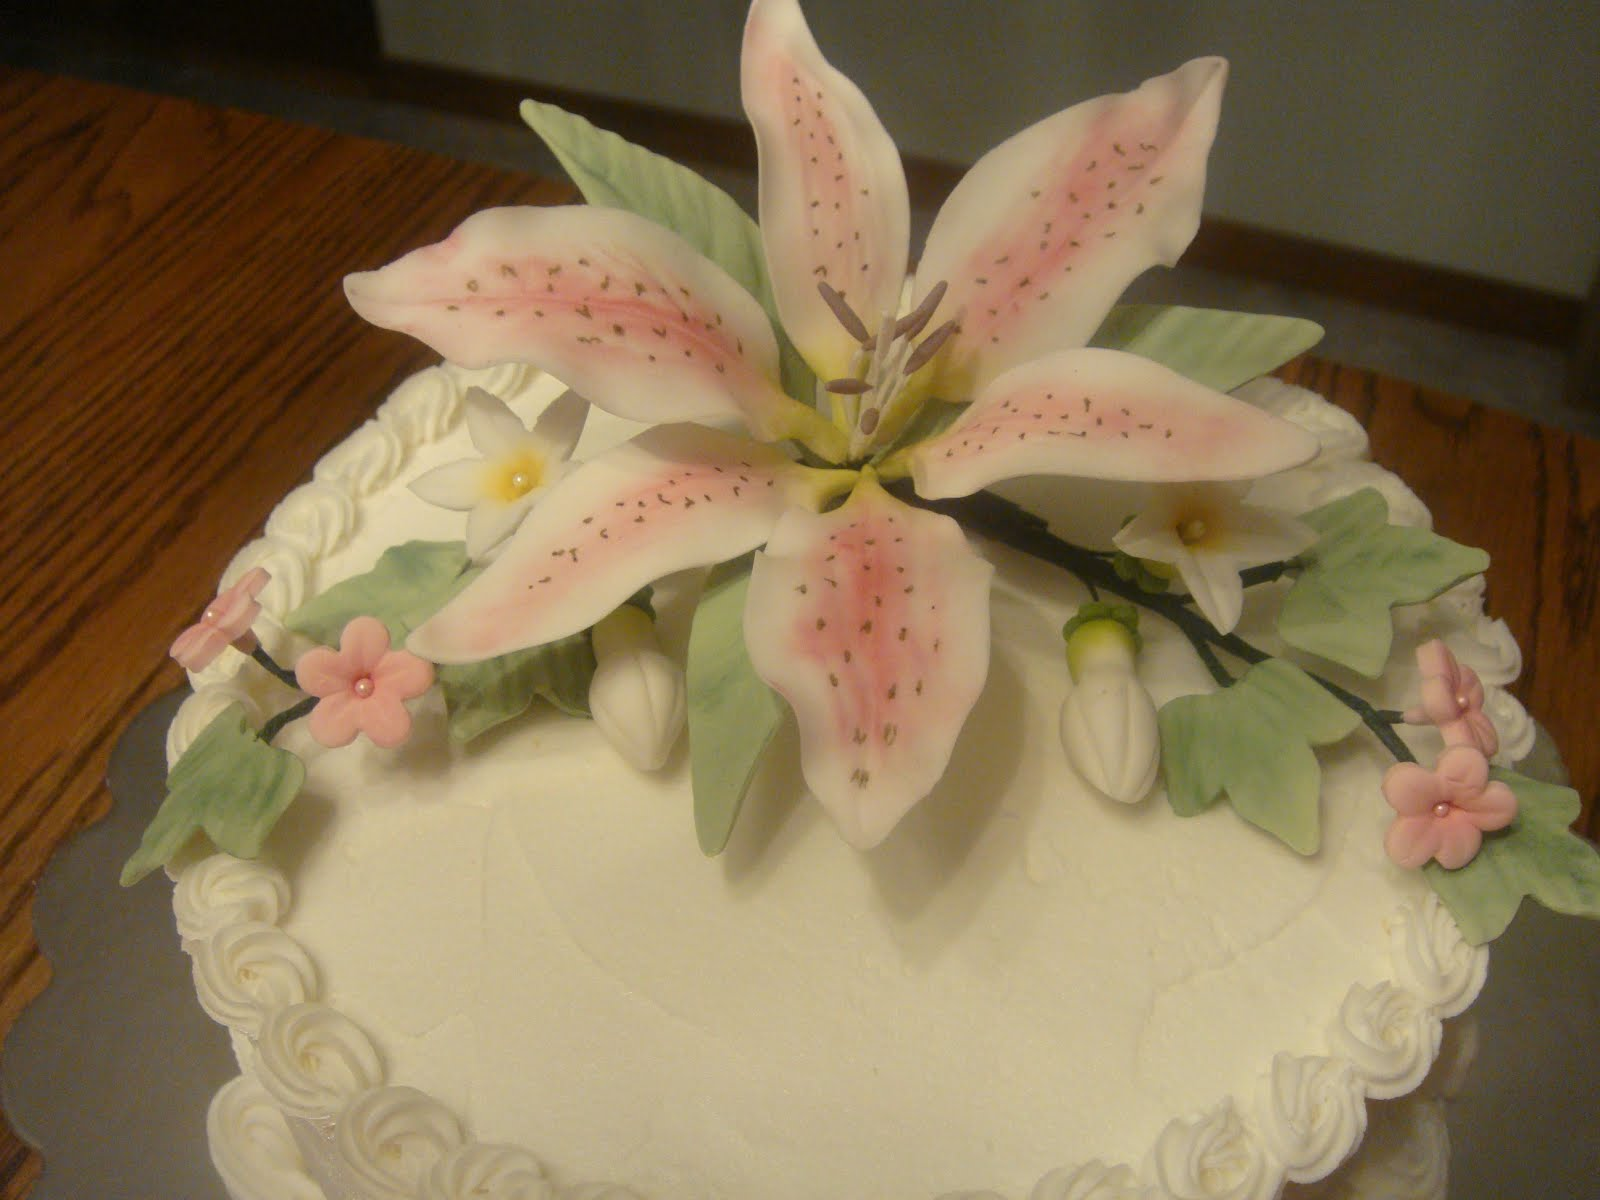 Cakes by lam designs birthday cake with edible gumpaste flowers birthday cake with edible gumpaste flowers izmirmasajfo